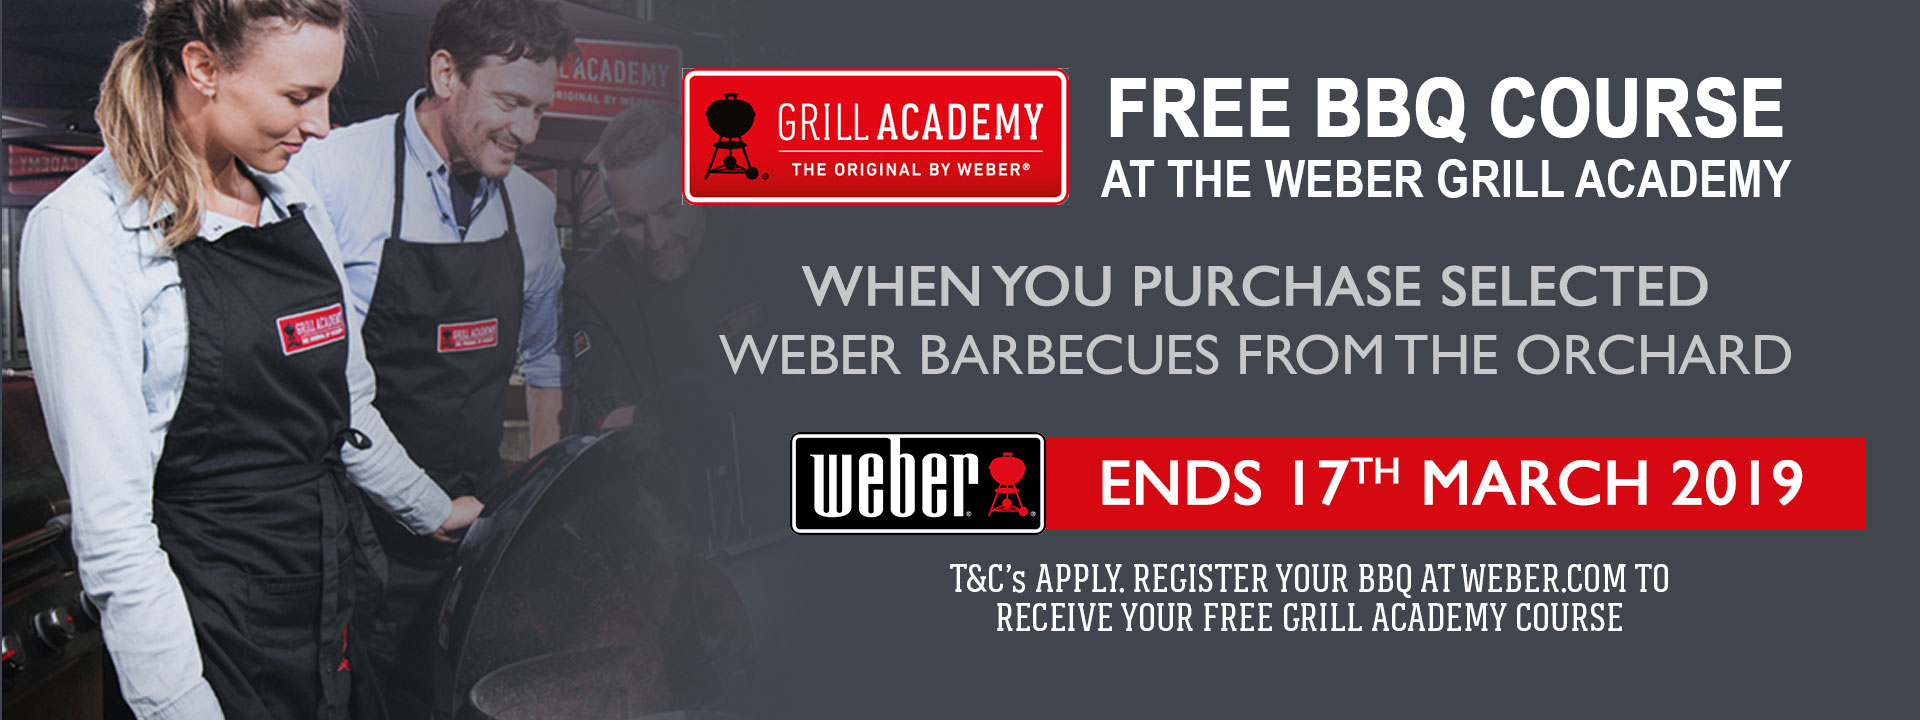 Weber Grill Academy Promo